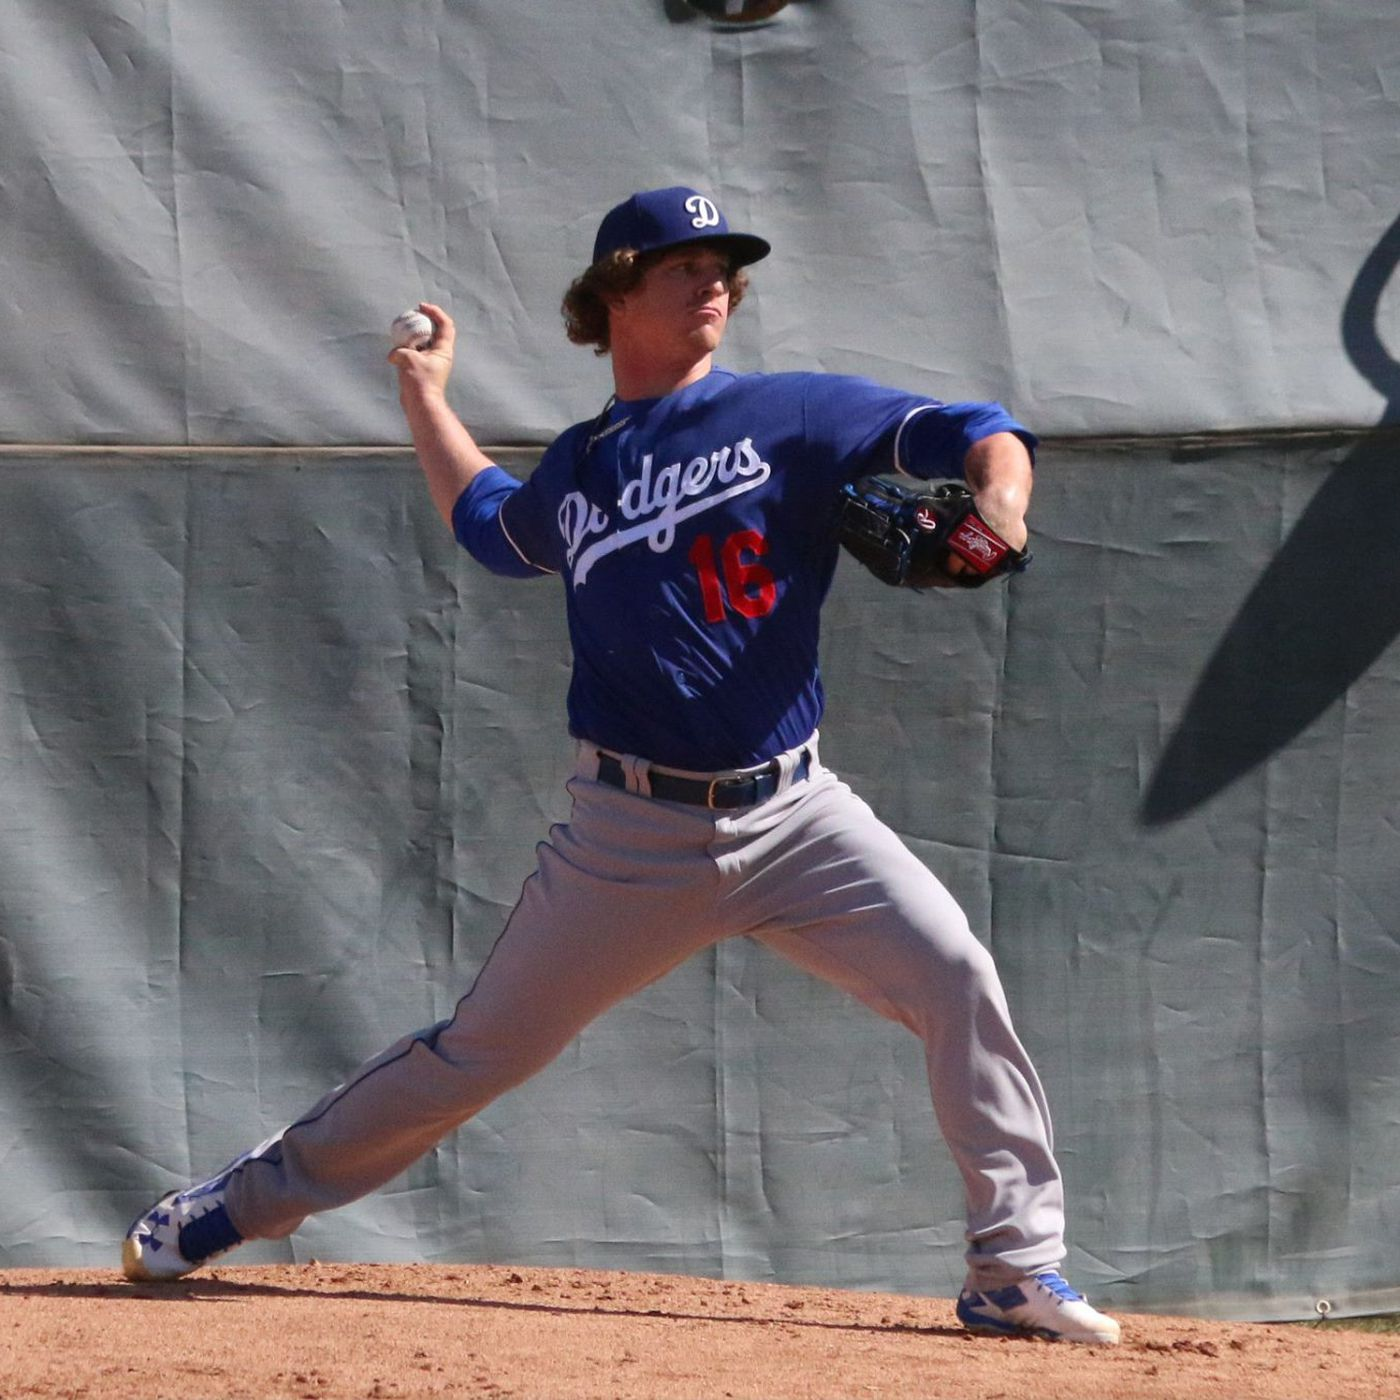 Dodgers trade deadline: On the outgoing Grant Holmes